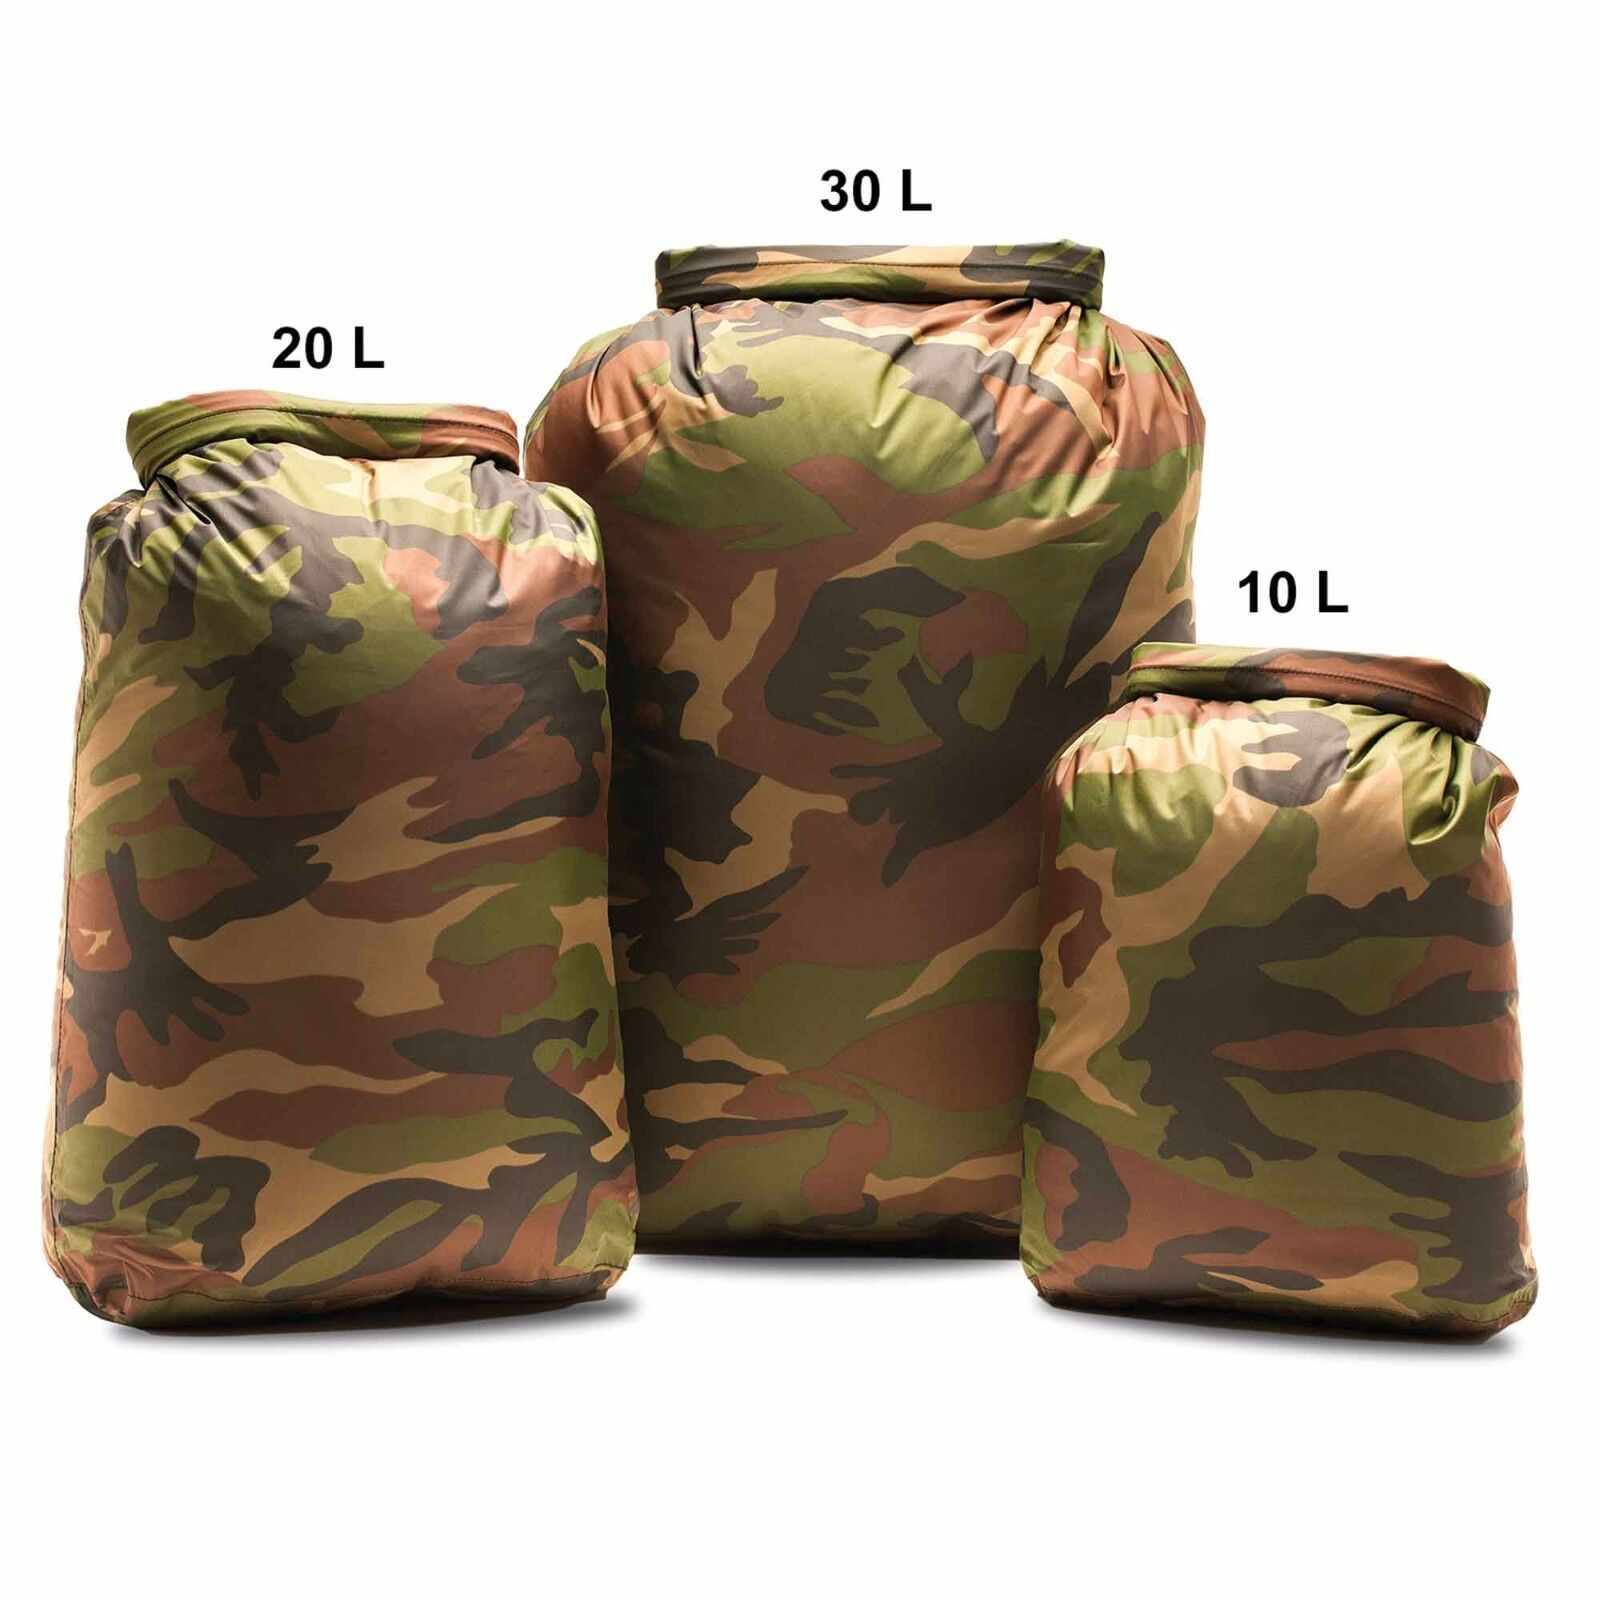 Aqua Quest Rogue Waterproof Dry Bag 10L, 20L, 30L, - Camo or Olive